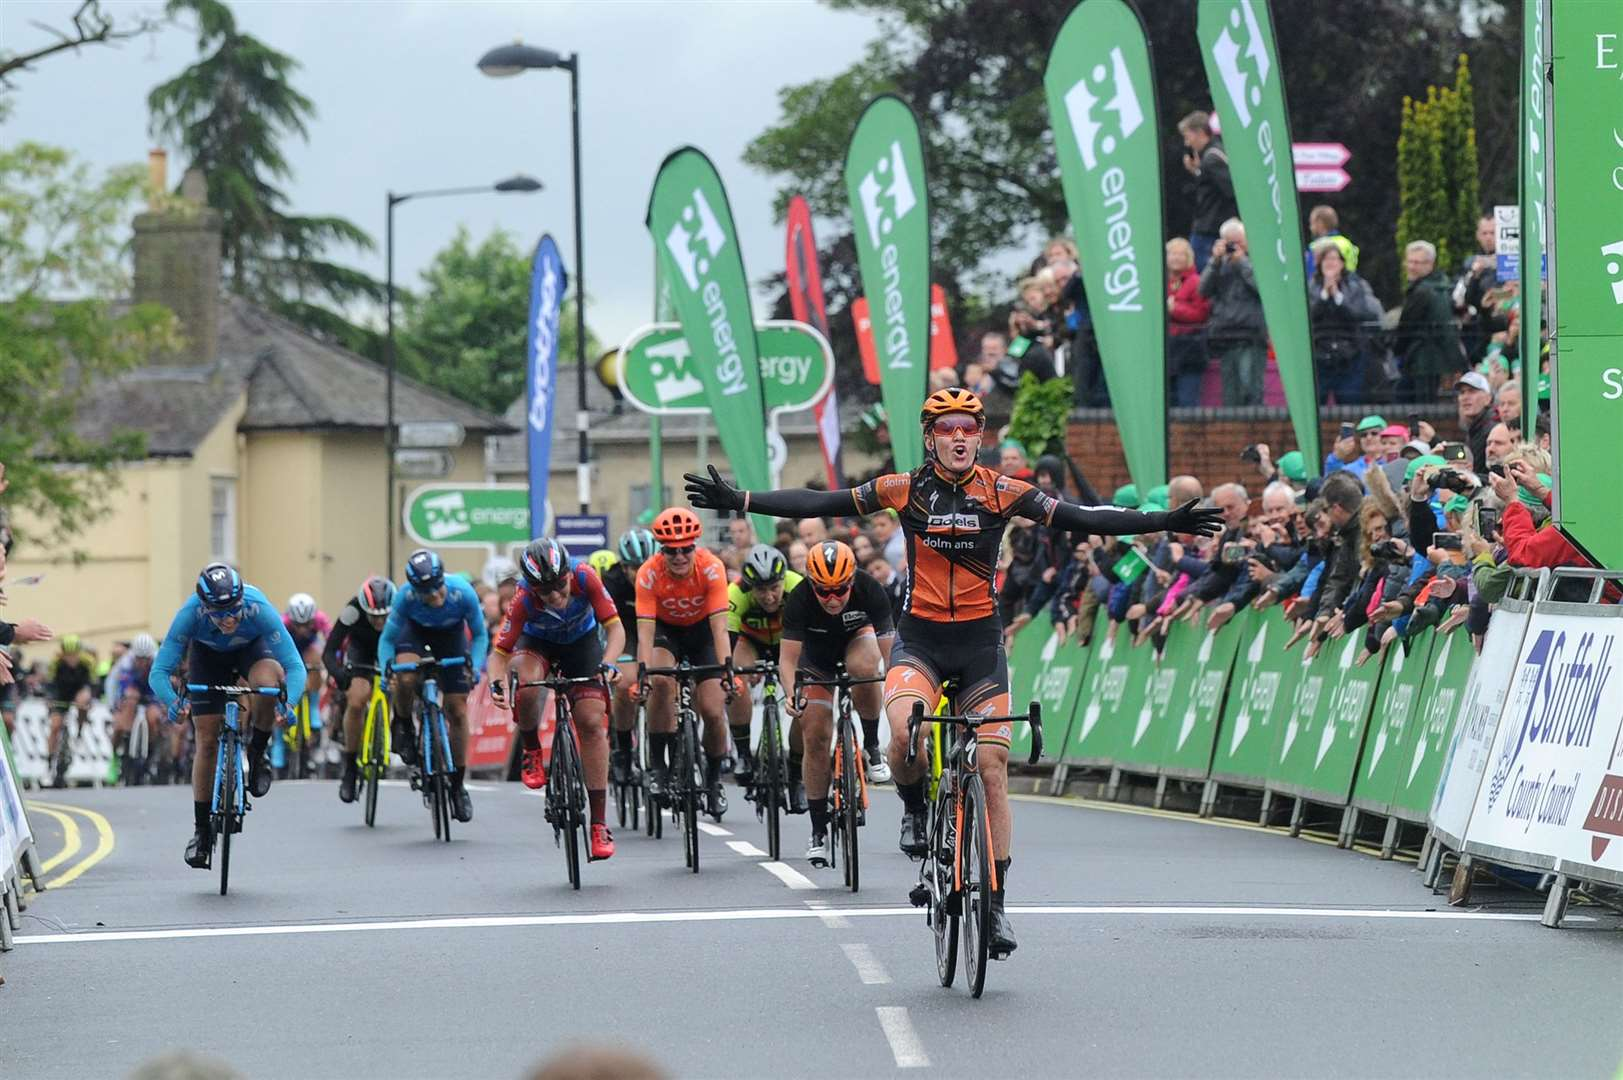 The Women's Tour in Stowmarket in 2019 with Jolien D'hoore taking the first green jersey as she wins the opening stage in Stowmarket. Picture: Mecha Morton